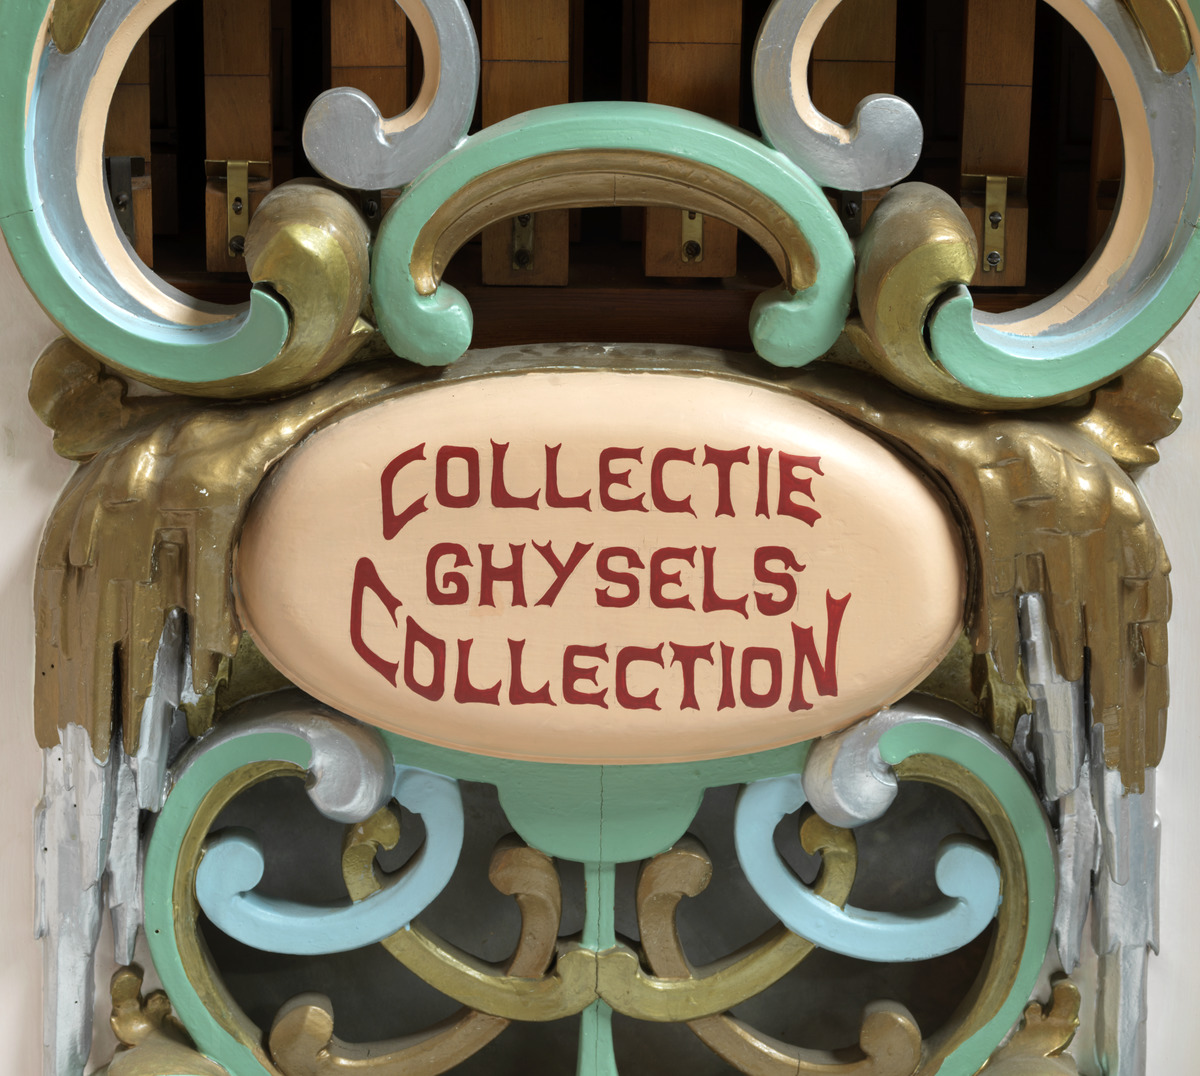 Collectie Ghysels